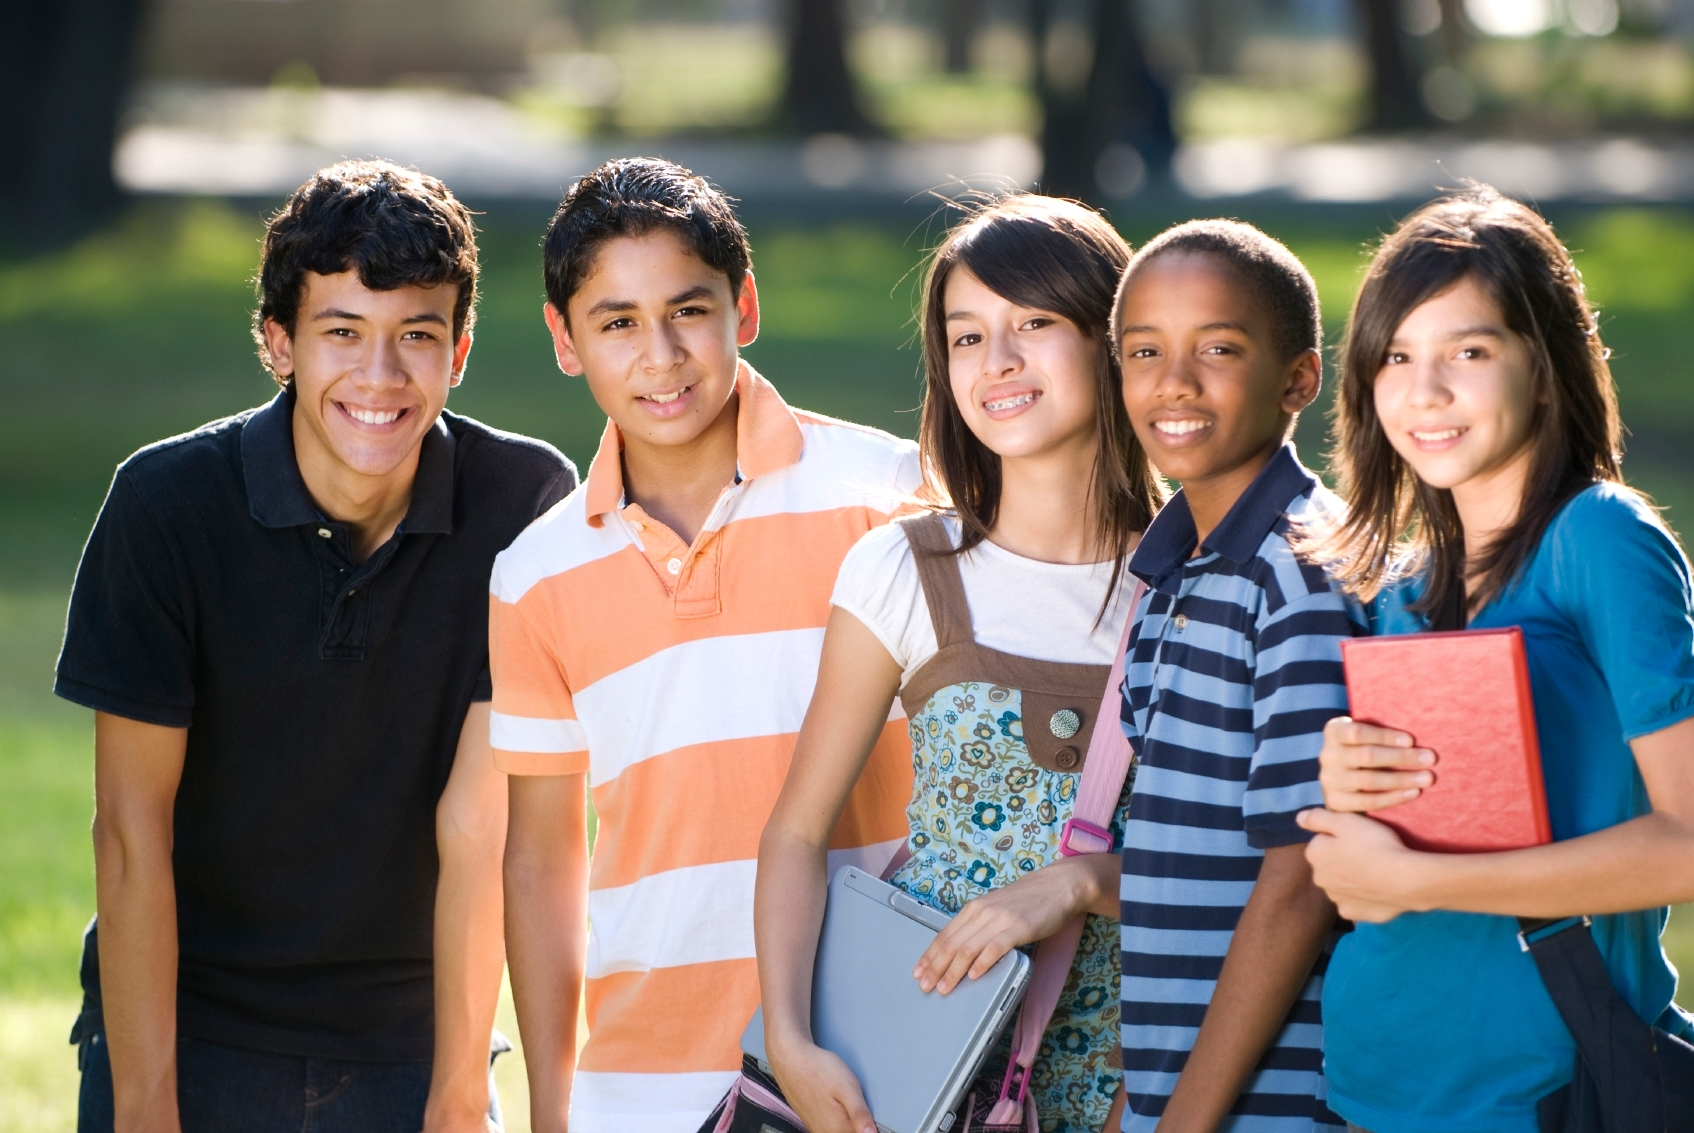 Serving Students in the San Jose Area